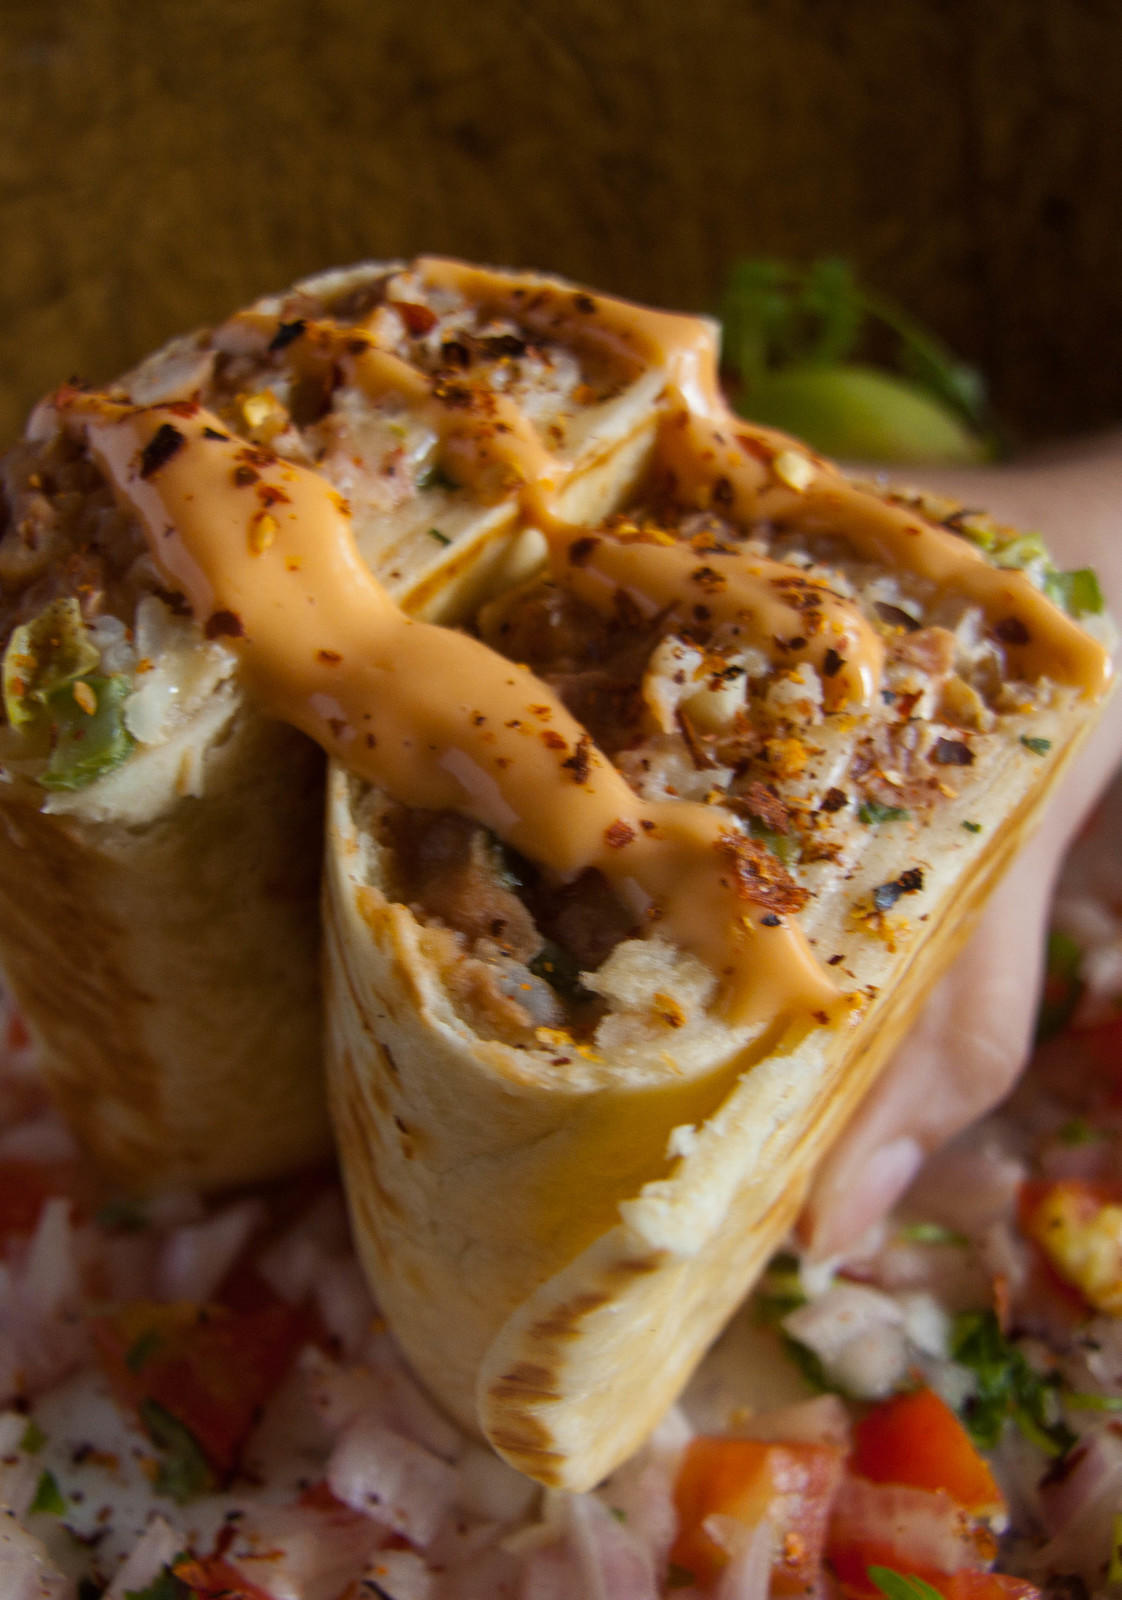 136: How to Make Indian Style Burrito Recipe